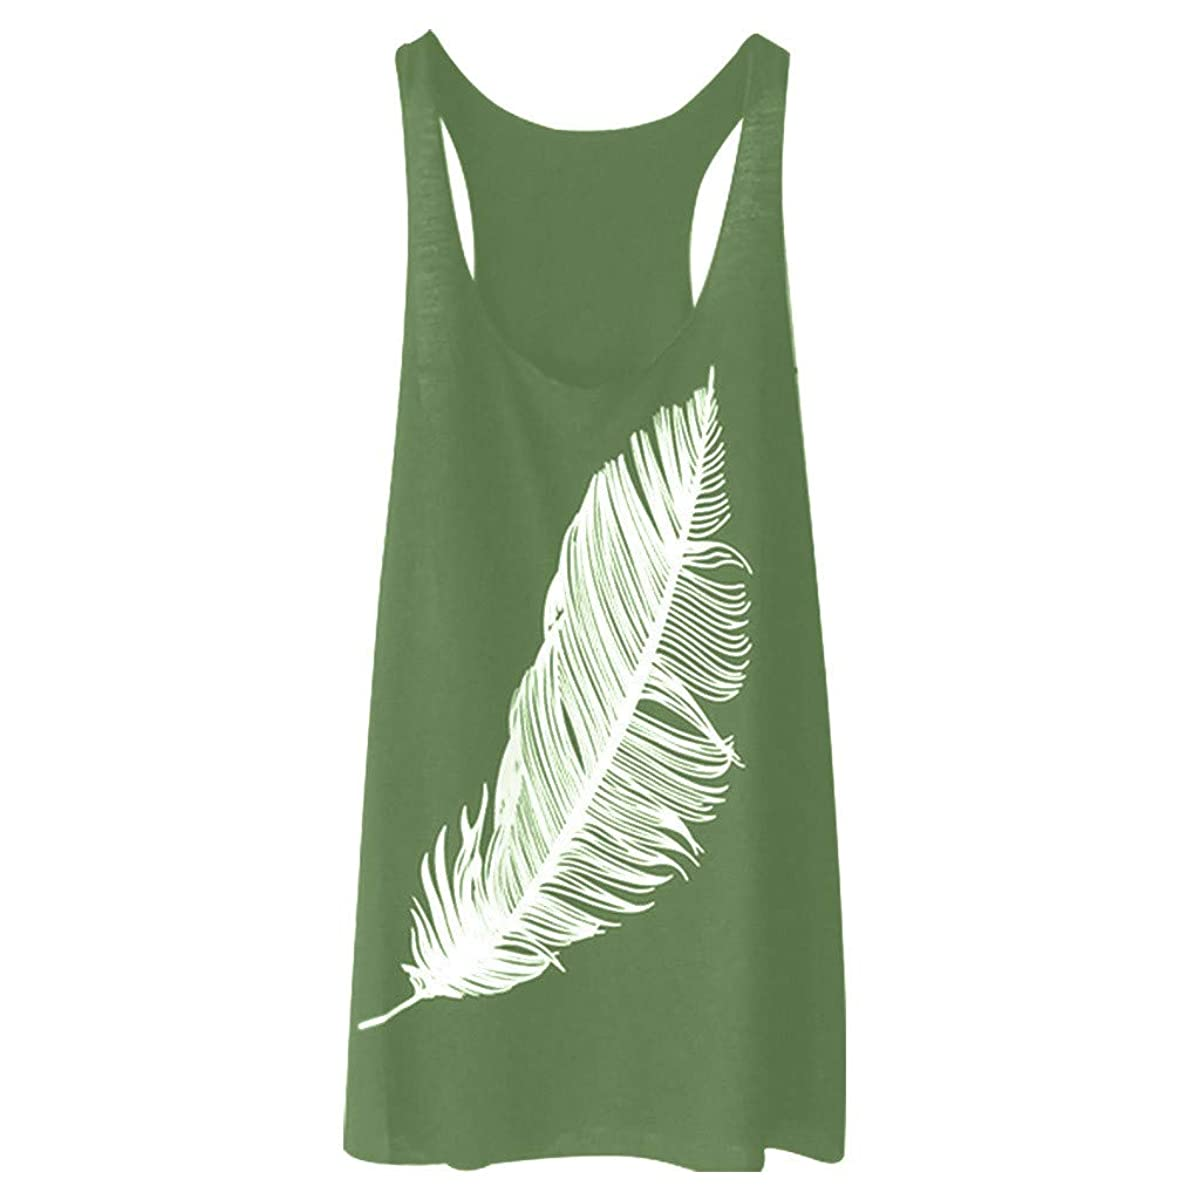 A.M.Feker Women's Summer Feather Print Long Vest Fashion Ladies Top Funny Humor